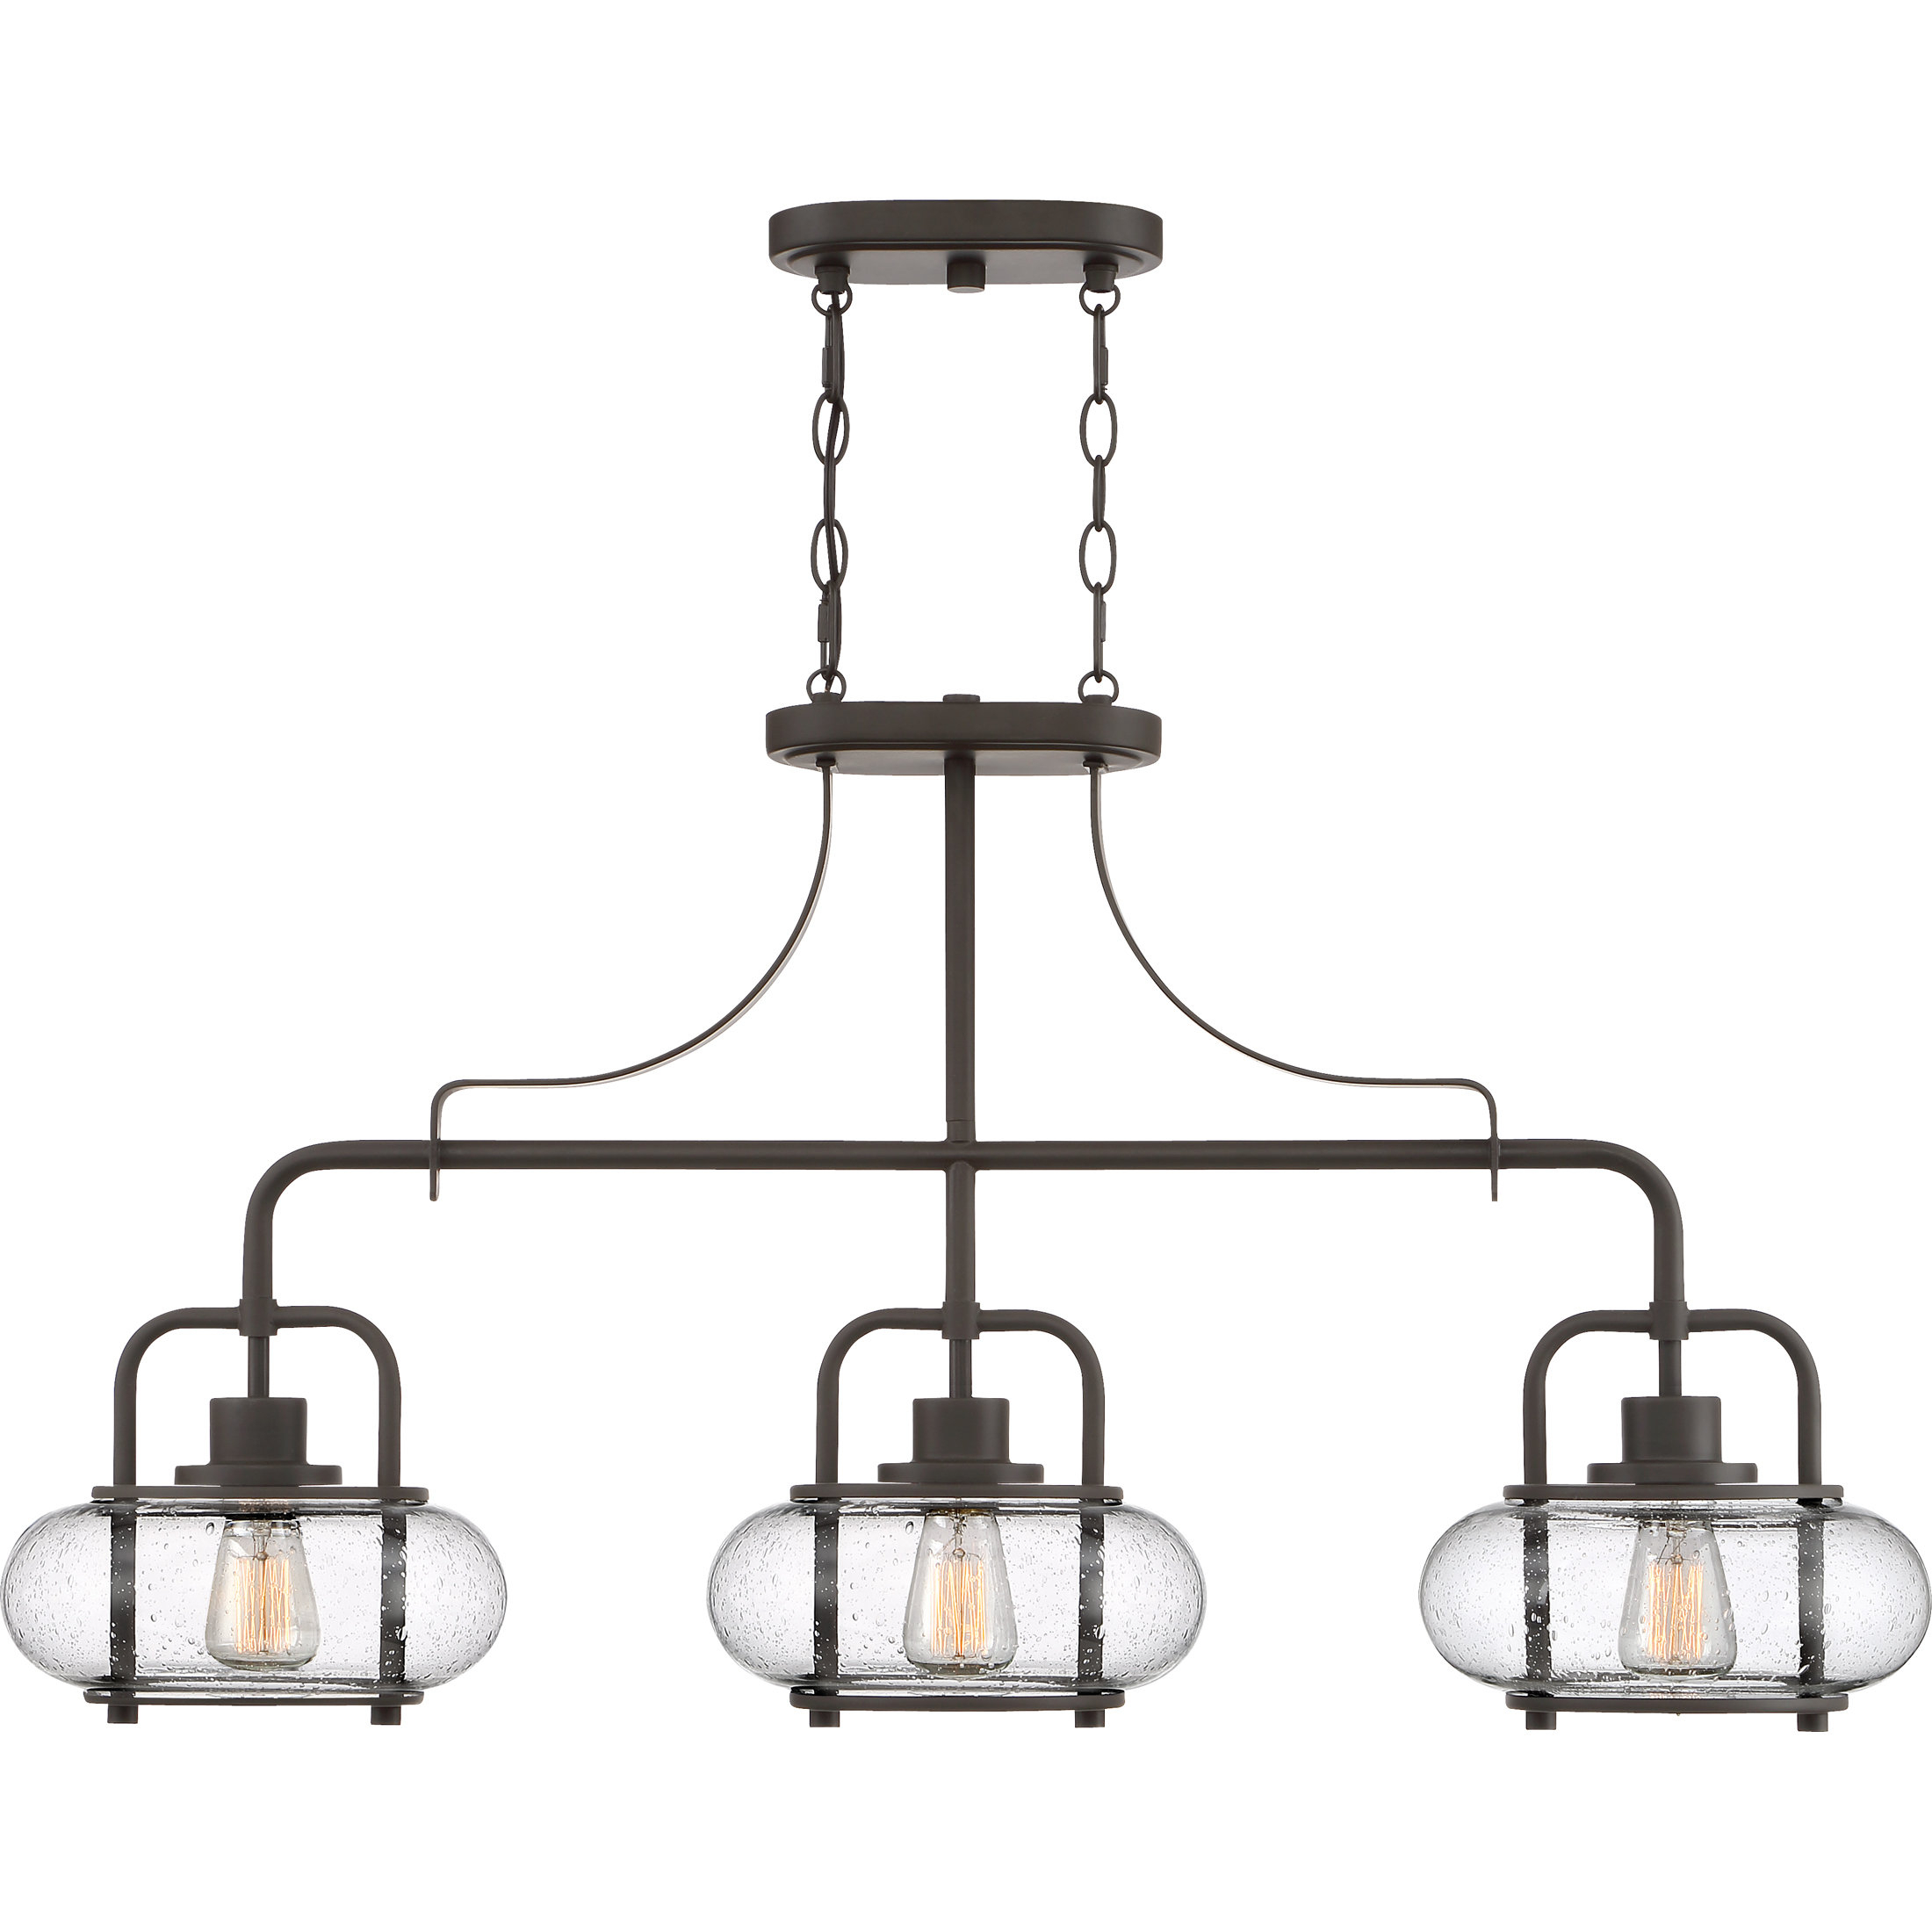 Fashionable Martinique 3 Light Kitchen Island Dome Pendants With Regard To Braxton 3 Light Kitchen Island Linear Pendant (View 8 of 25)